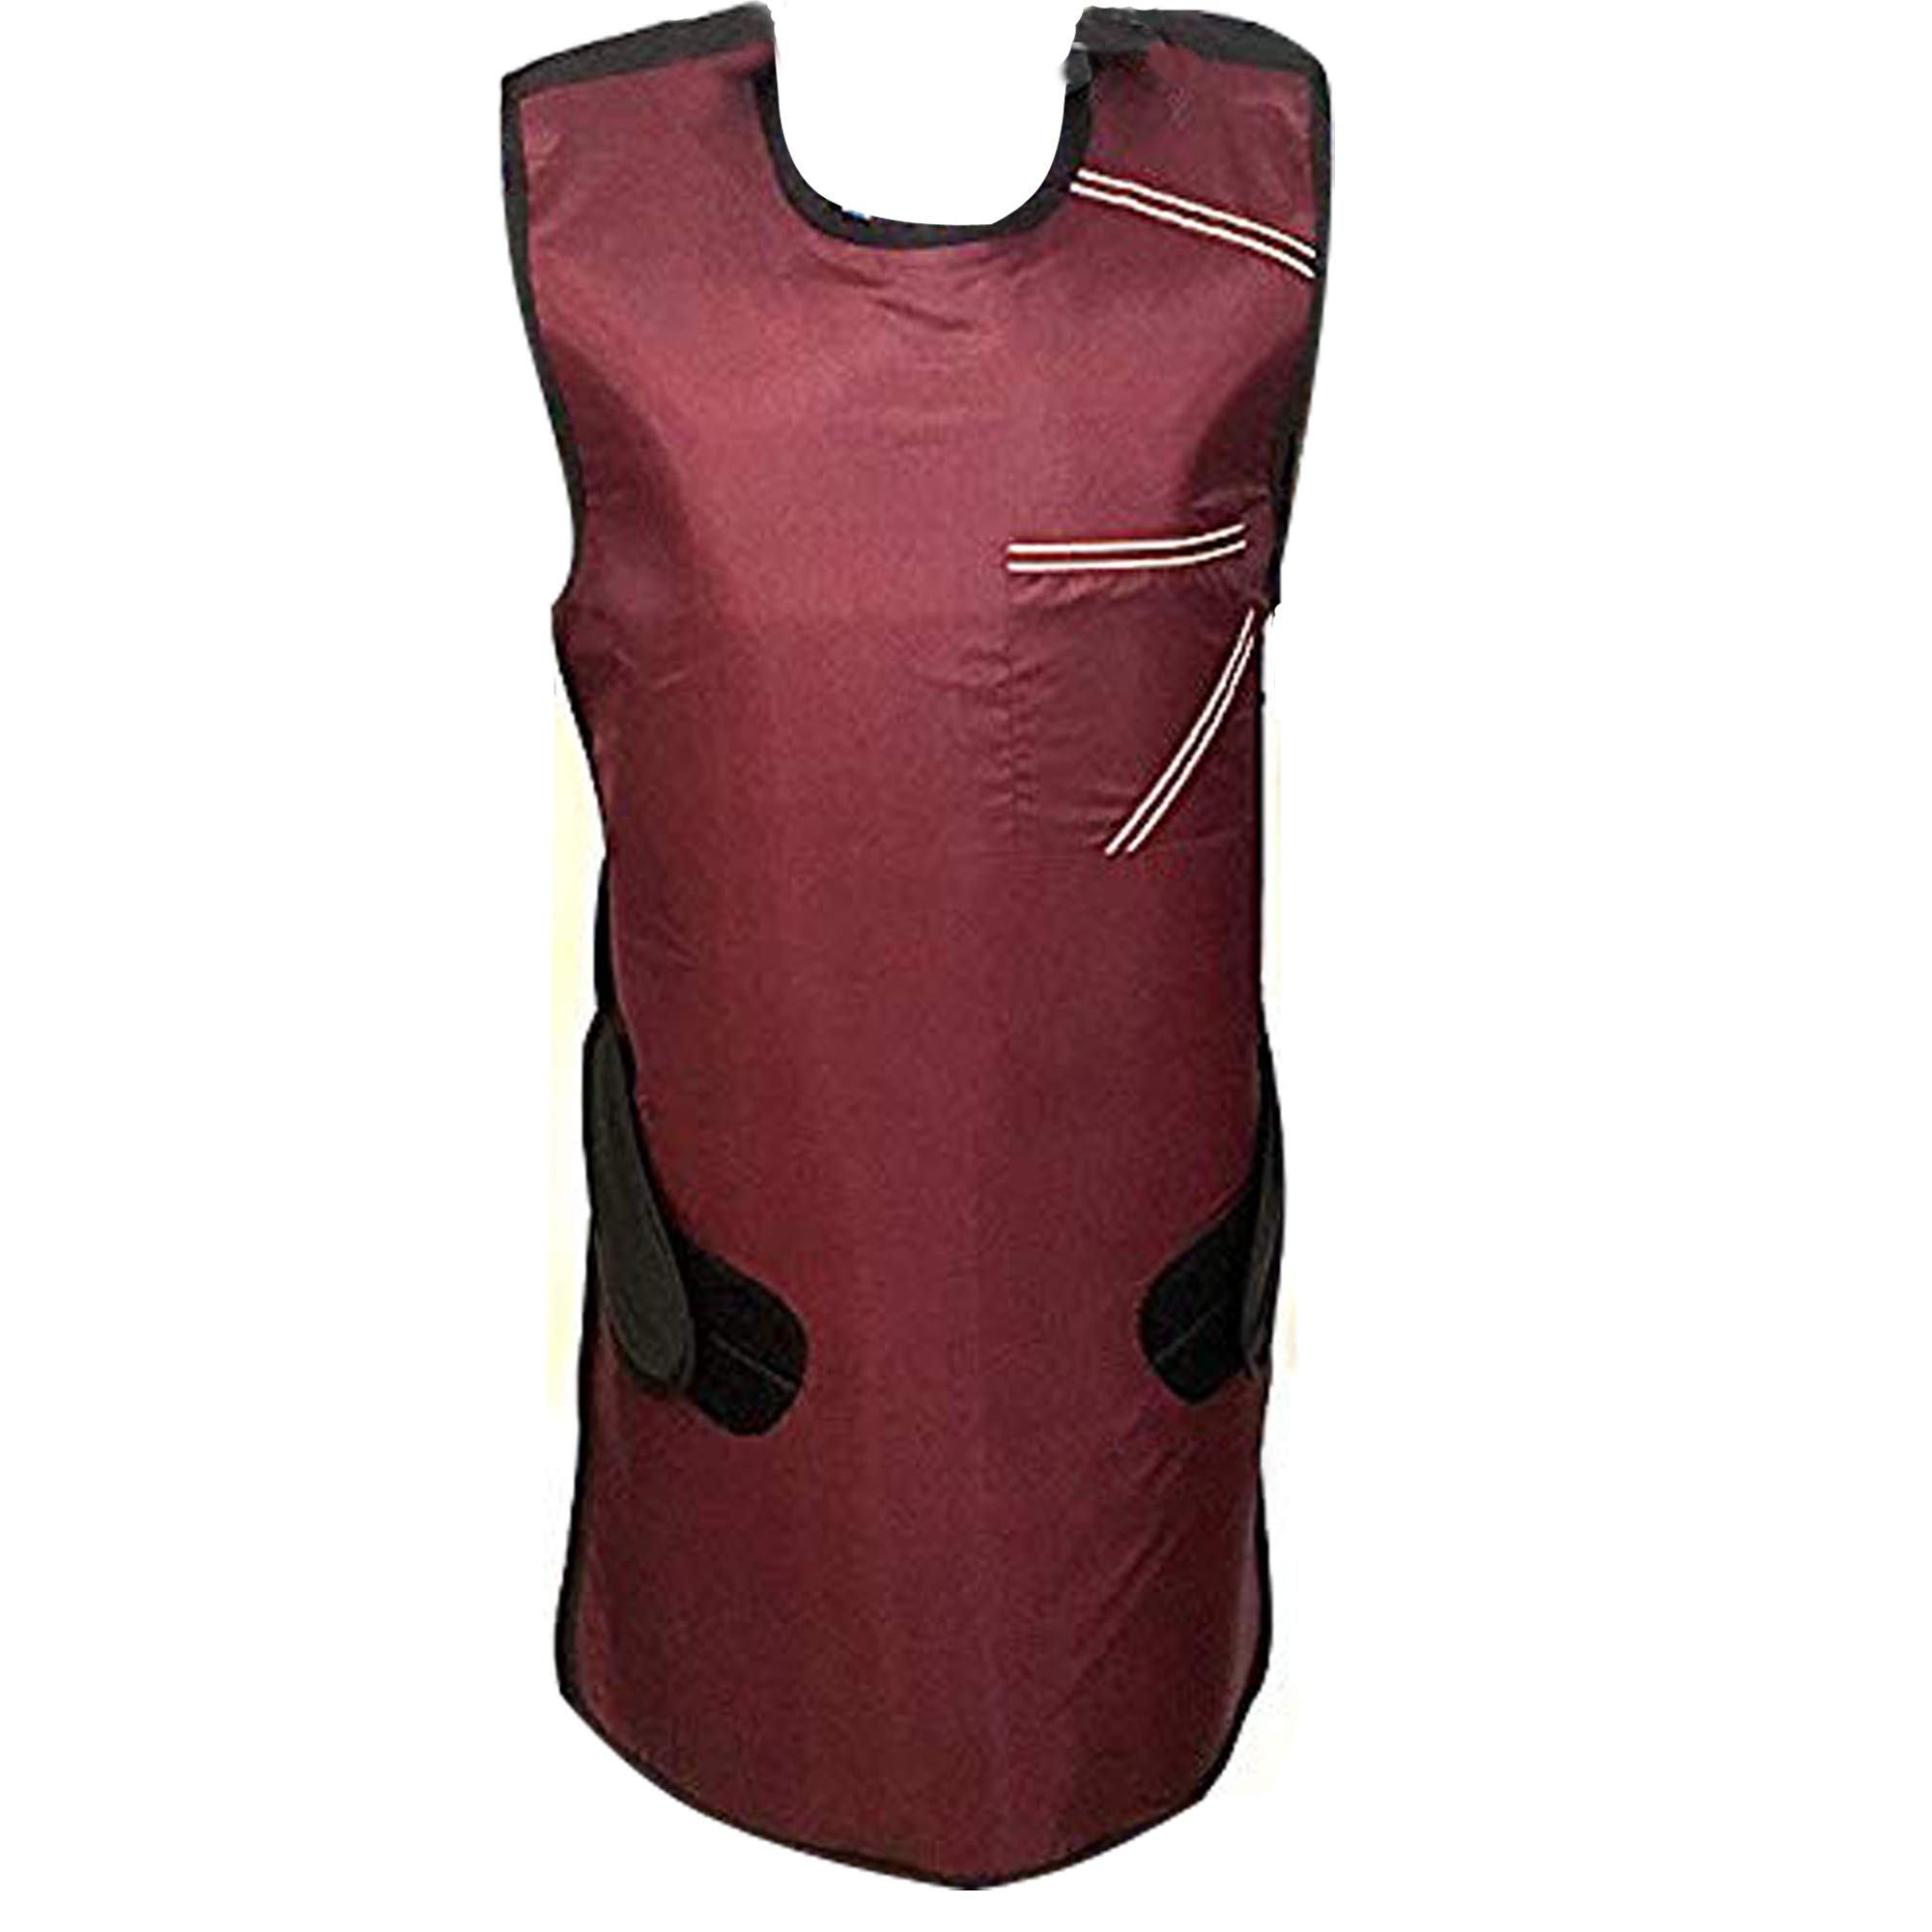 HealthGoodsIn - Lead Apron 0.5mm Lead (pb) Equivalency Protection for Working with X-Ray Machine | Lead Apron with Robust Hanger for Hospitals, Labs, Nursing Homes, Etc. (Maroon)